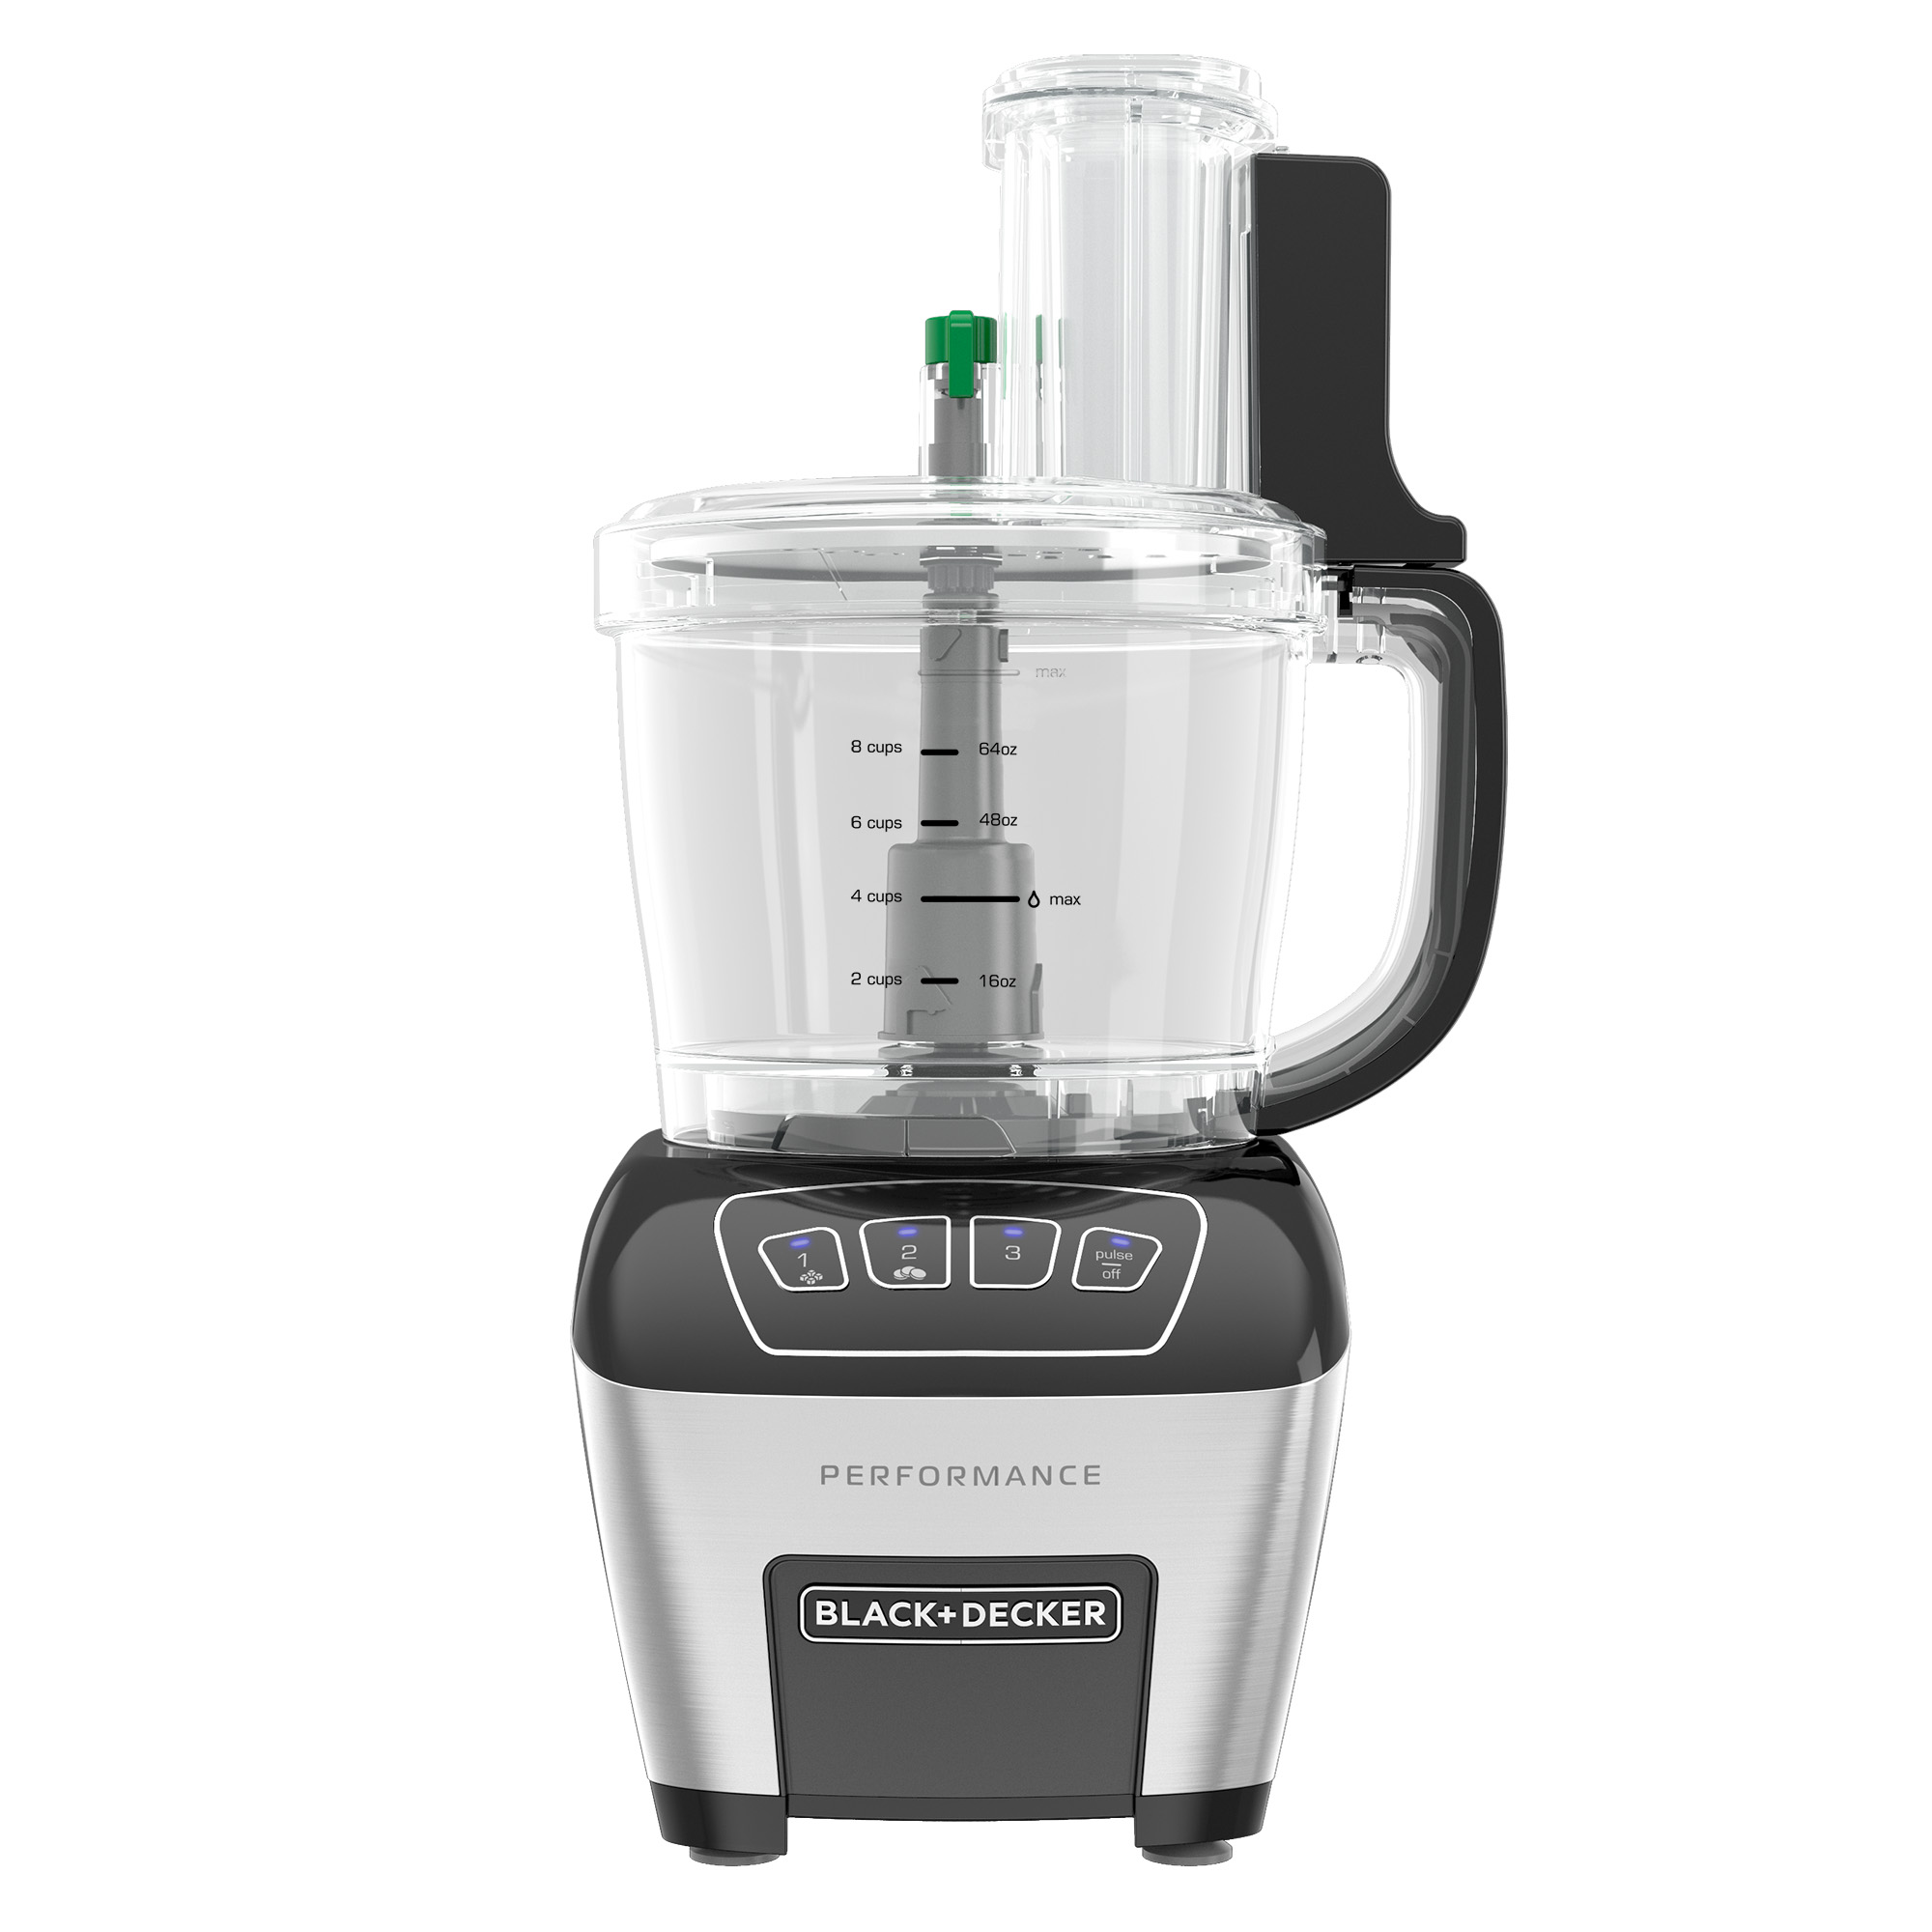 Black N Decker Food Processor Spectrum Brands